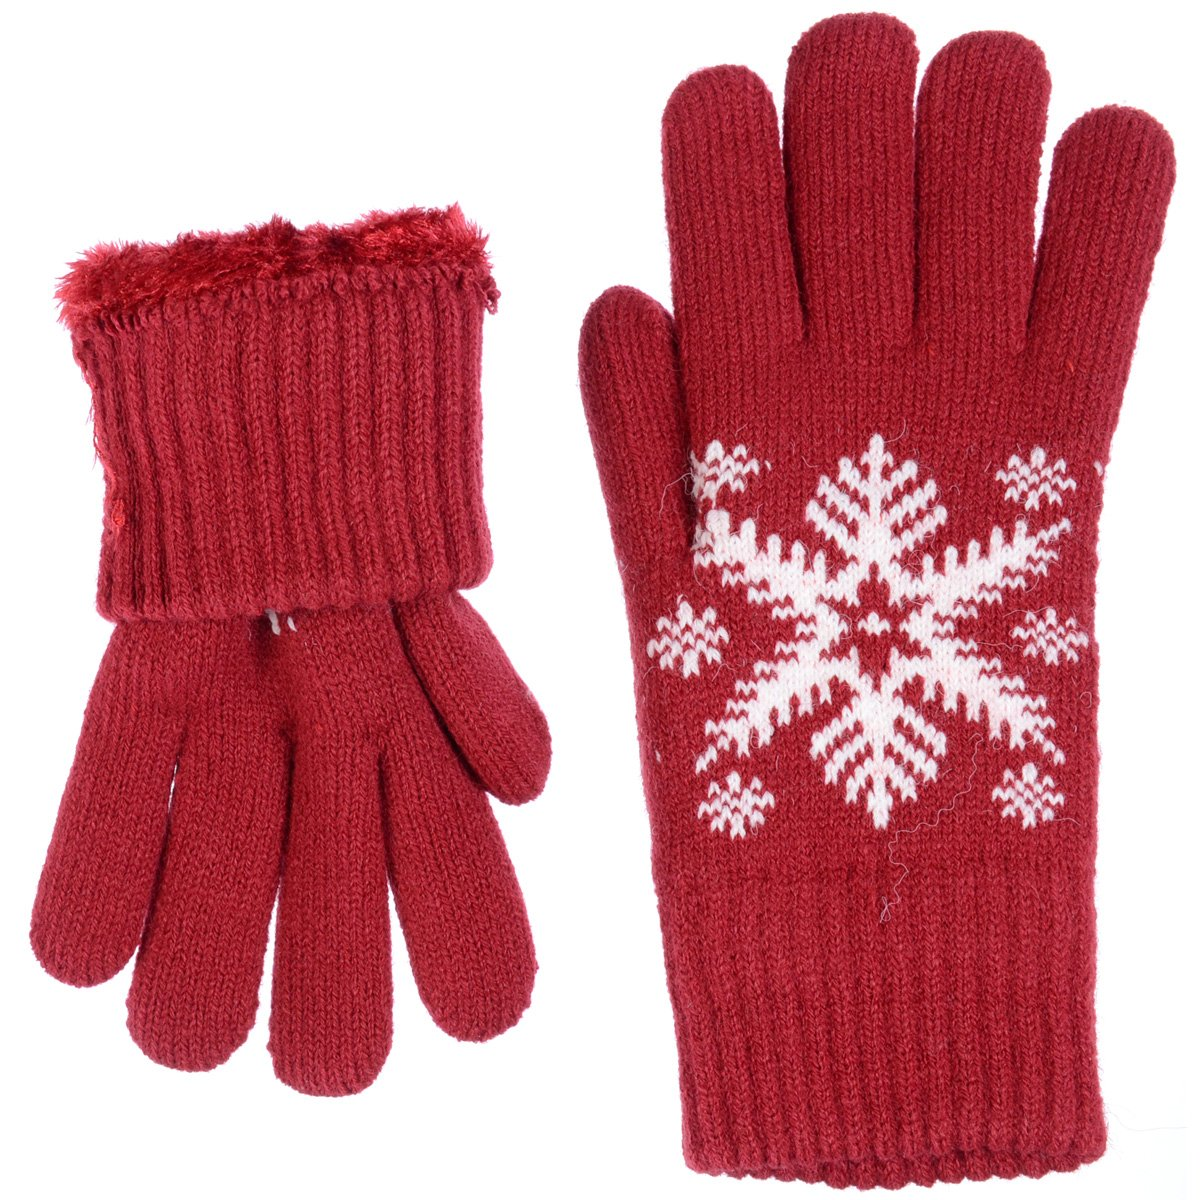 BYOS Womens Winter Ultra Warm Plush Fleece Lined Knit Gloves With Various Pattern Design (Red Snowflake) by Be Your Own Style (Image #4)